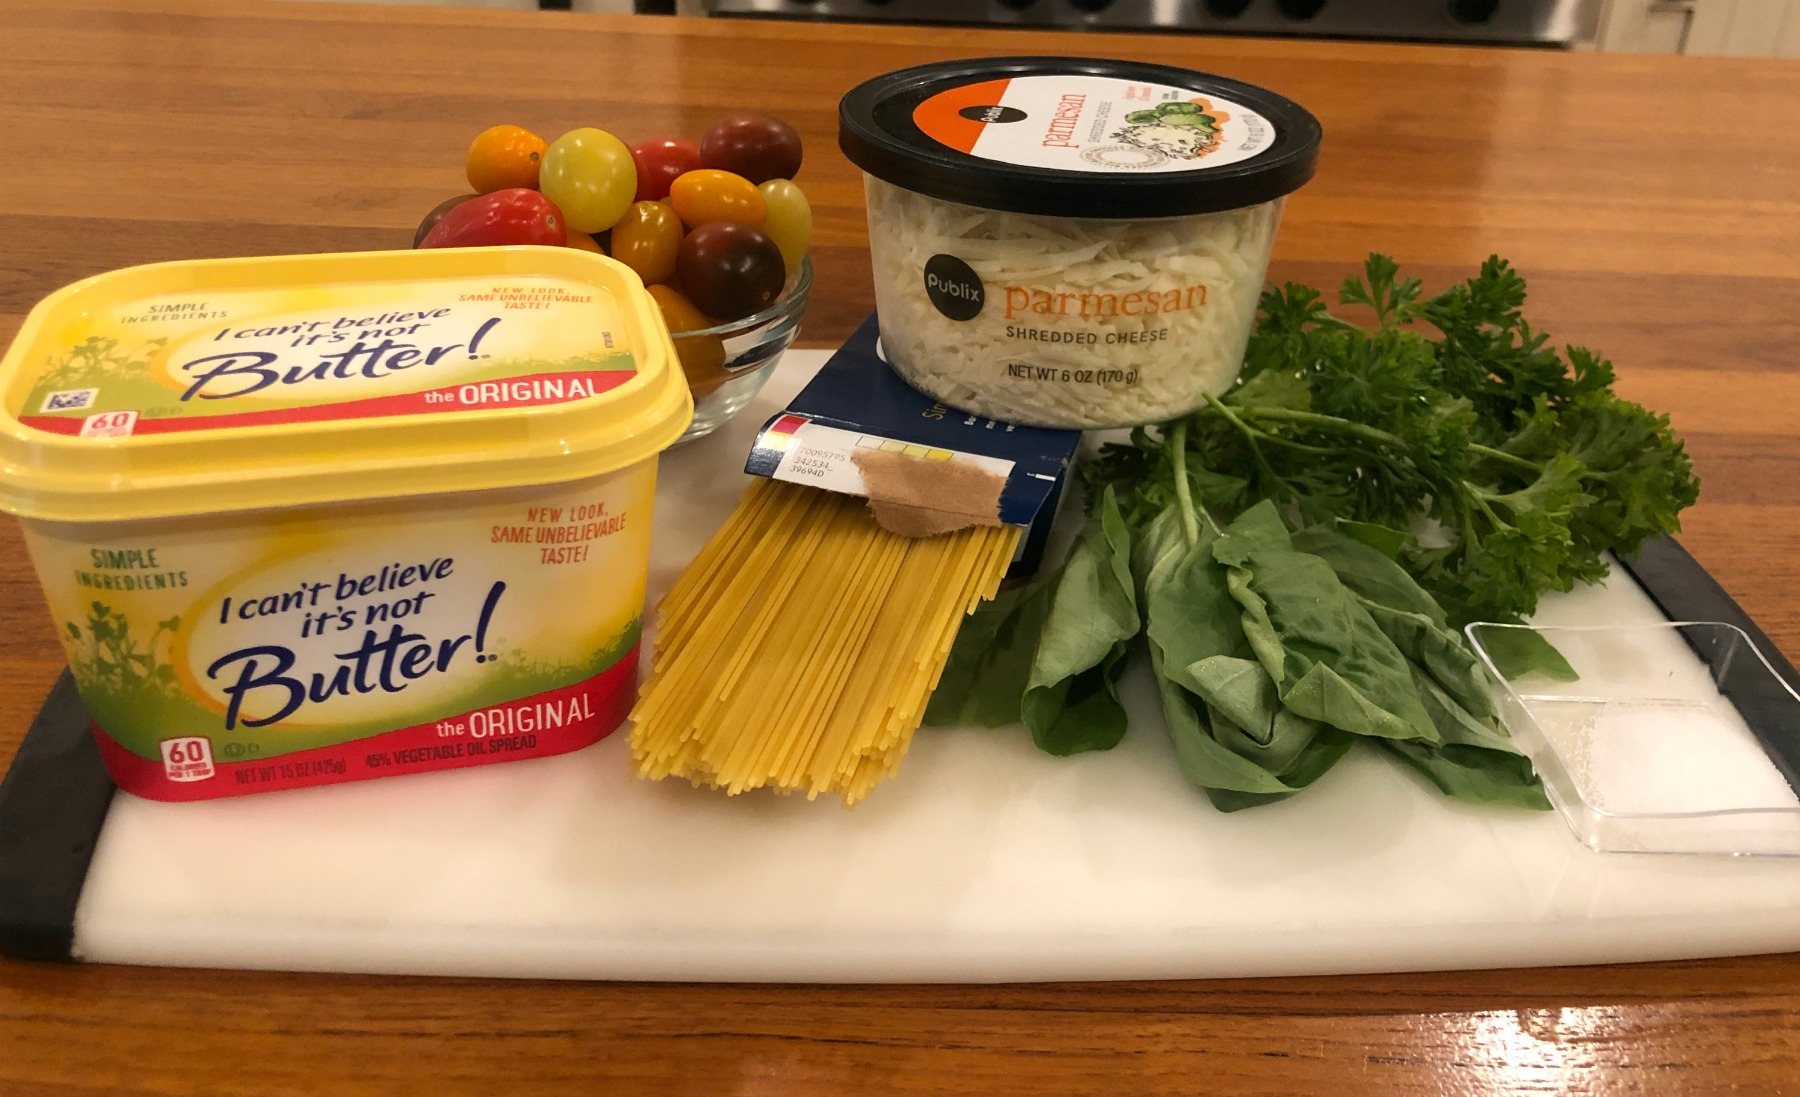 Spaghetti With Tomatoes & Fresh Herb - Tasty Recipe For The I Can't Believe it's Not Butter! BOGO Sale